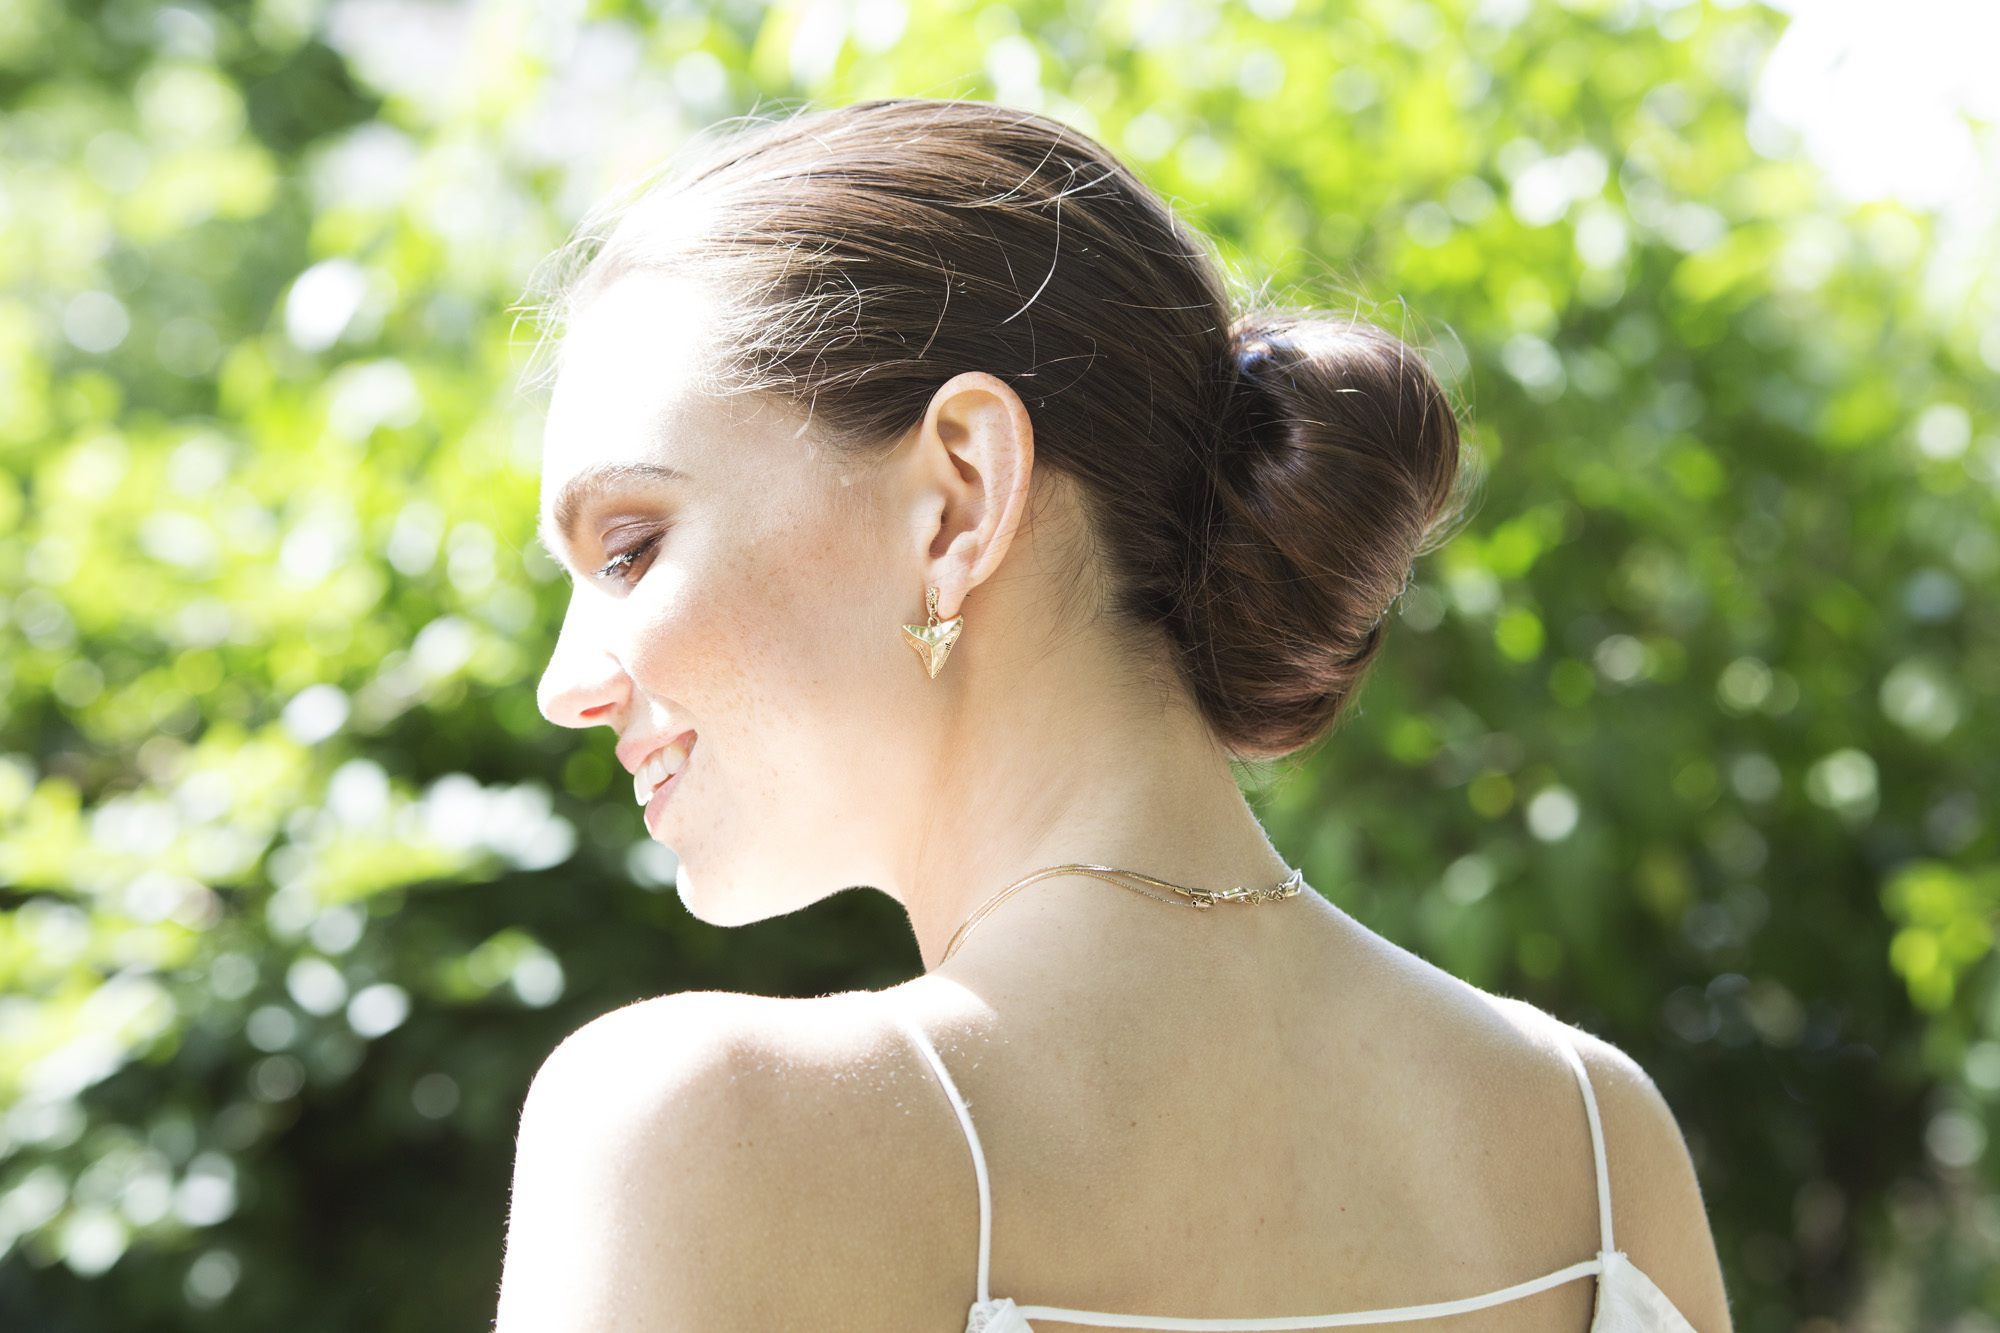 back shot of model with ballerina low bun updo hairstyle, wearing white and standing outside in a park